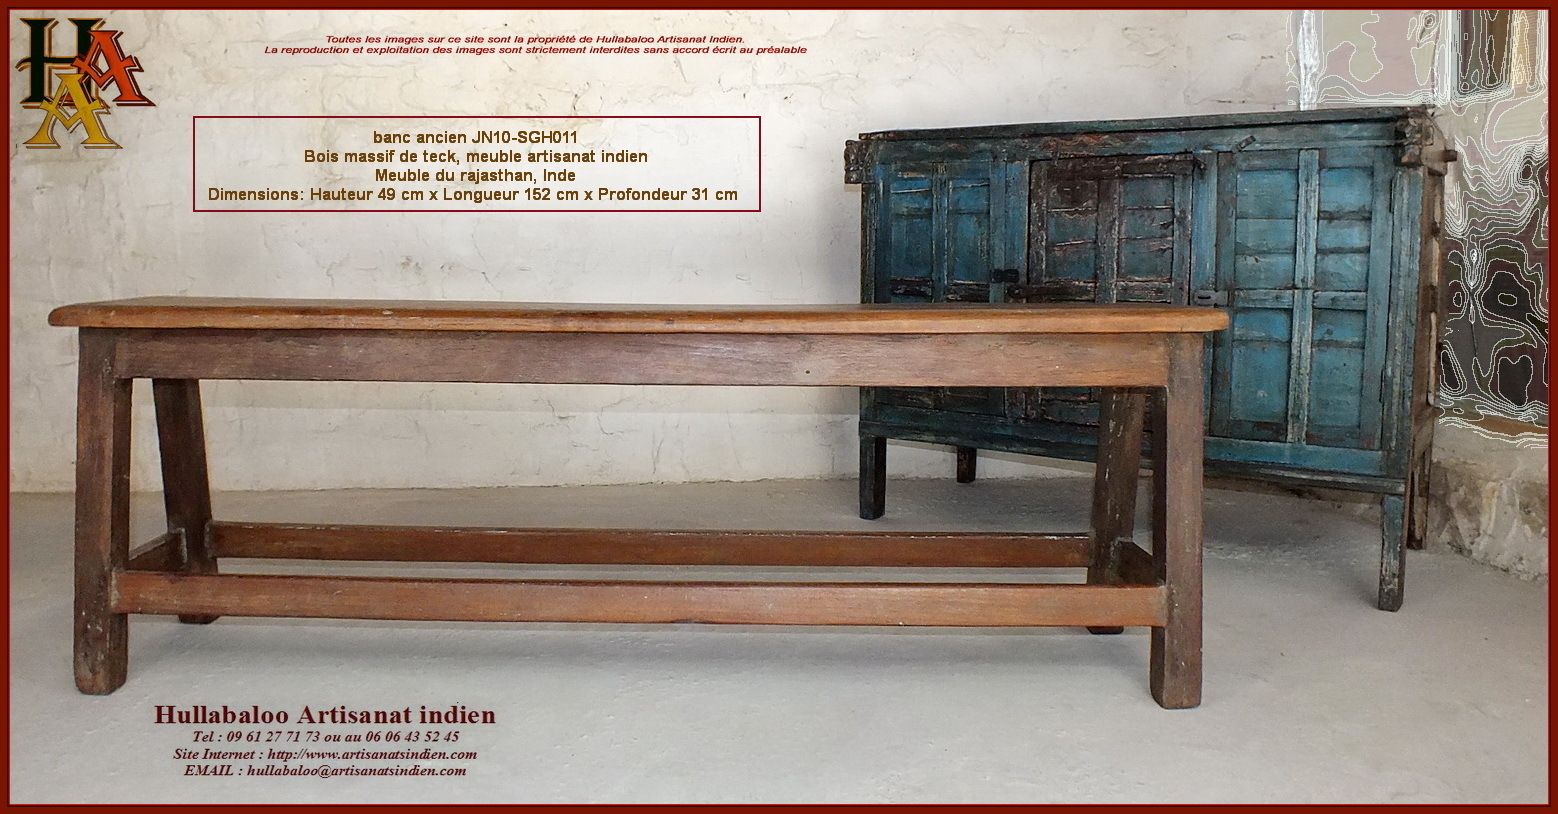 banc indien ancien jn10 sgh011 meubles indiens artisanat d 39 asie. Black Bedroom Furniture Sets. Home Design Ideas